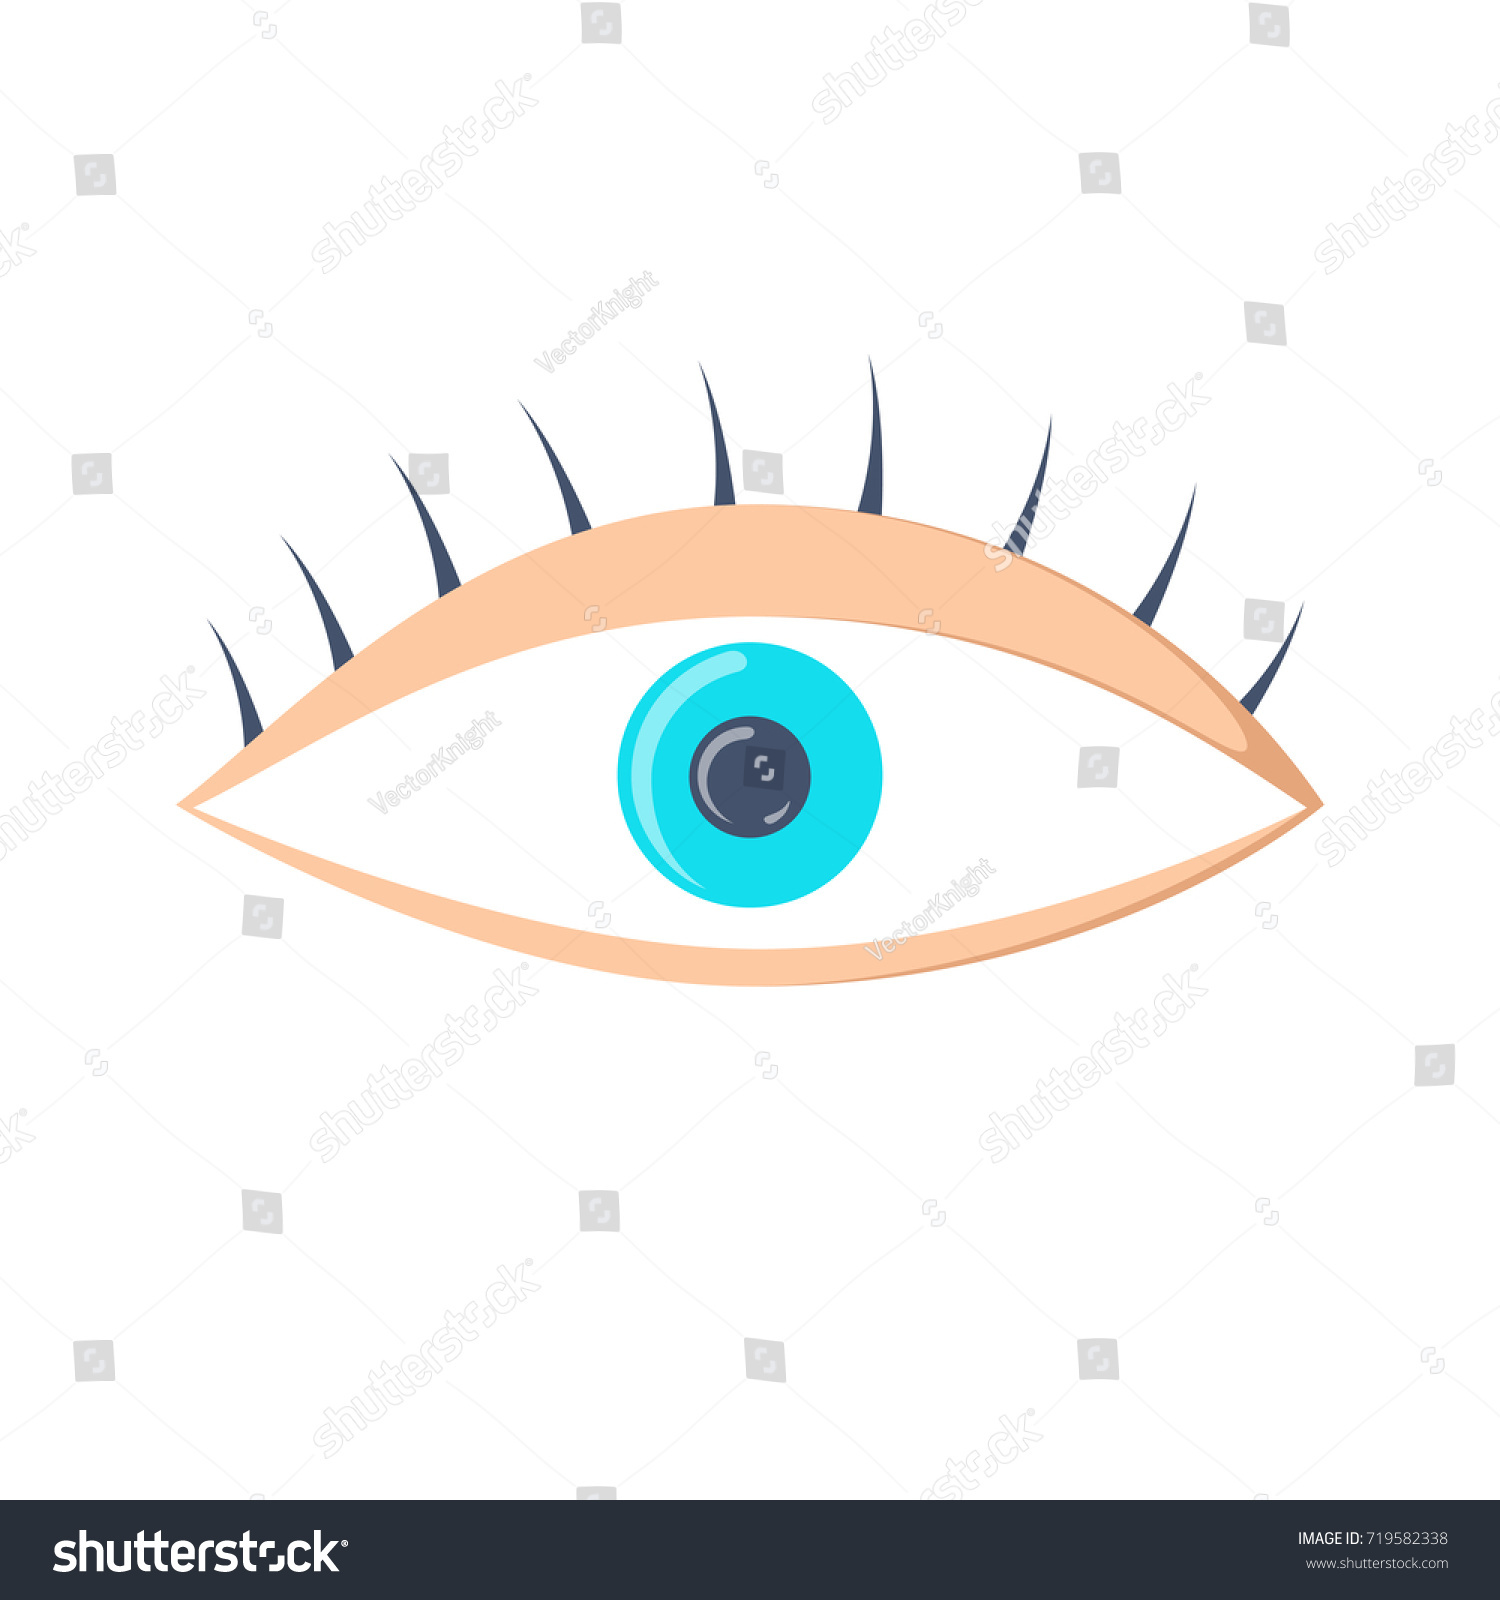 eye icon simple eye vector illustration stock vector (royalty free